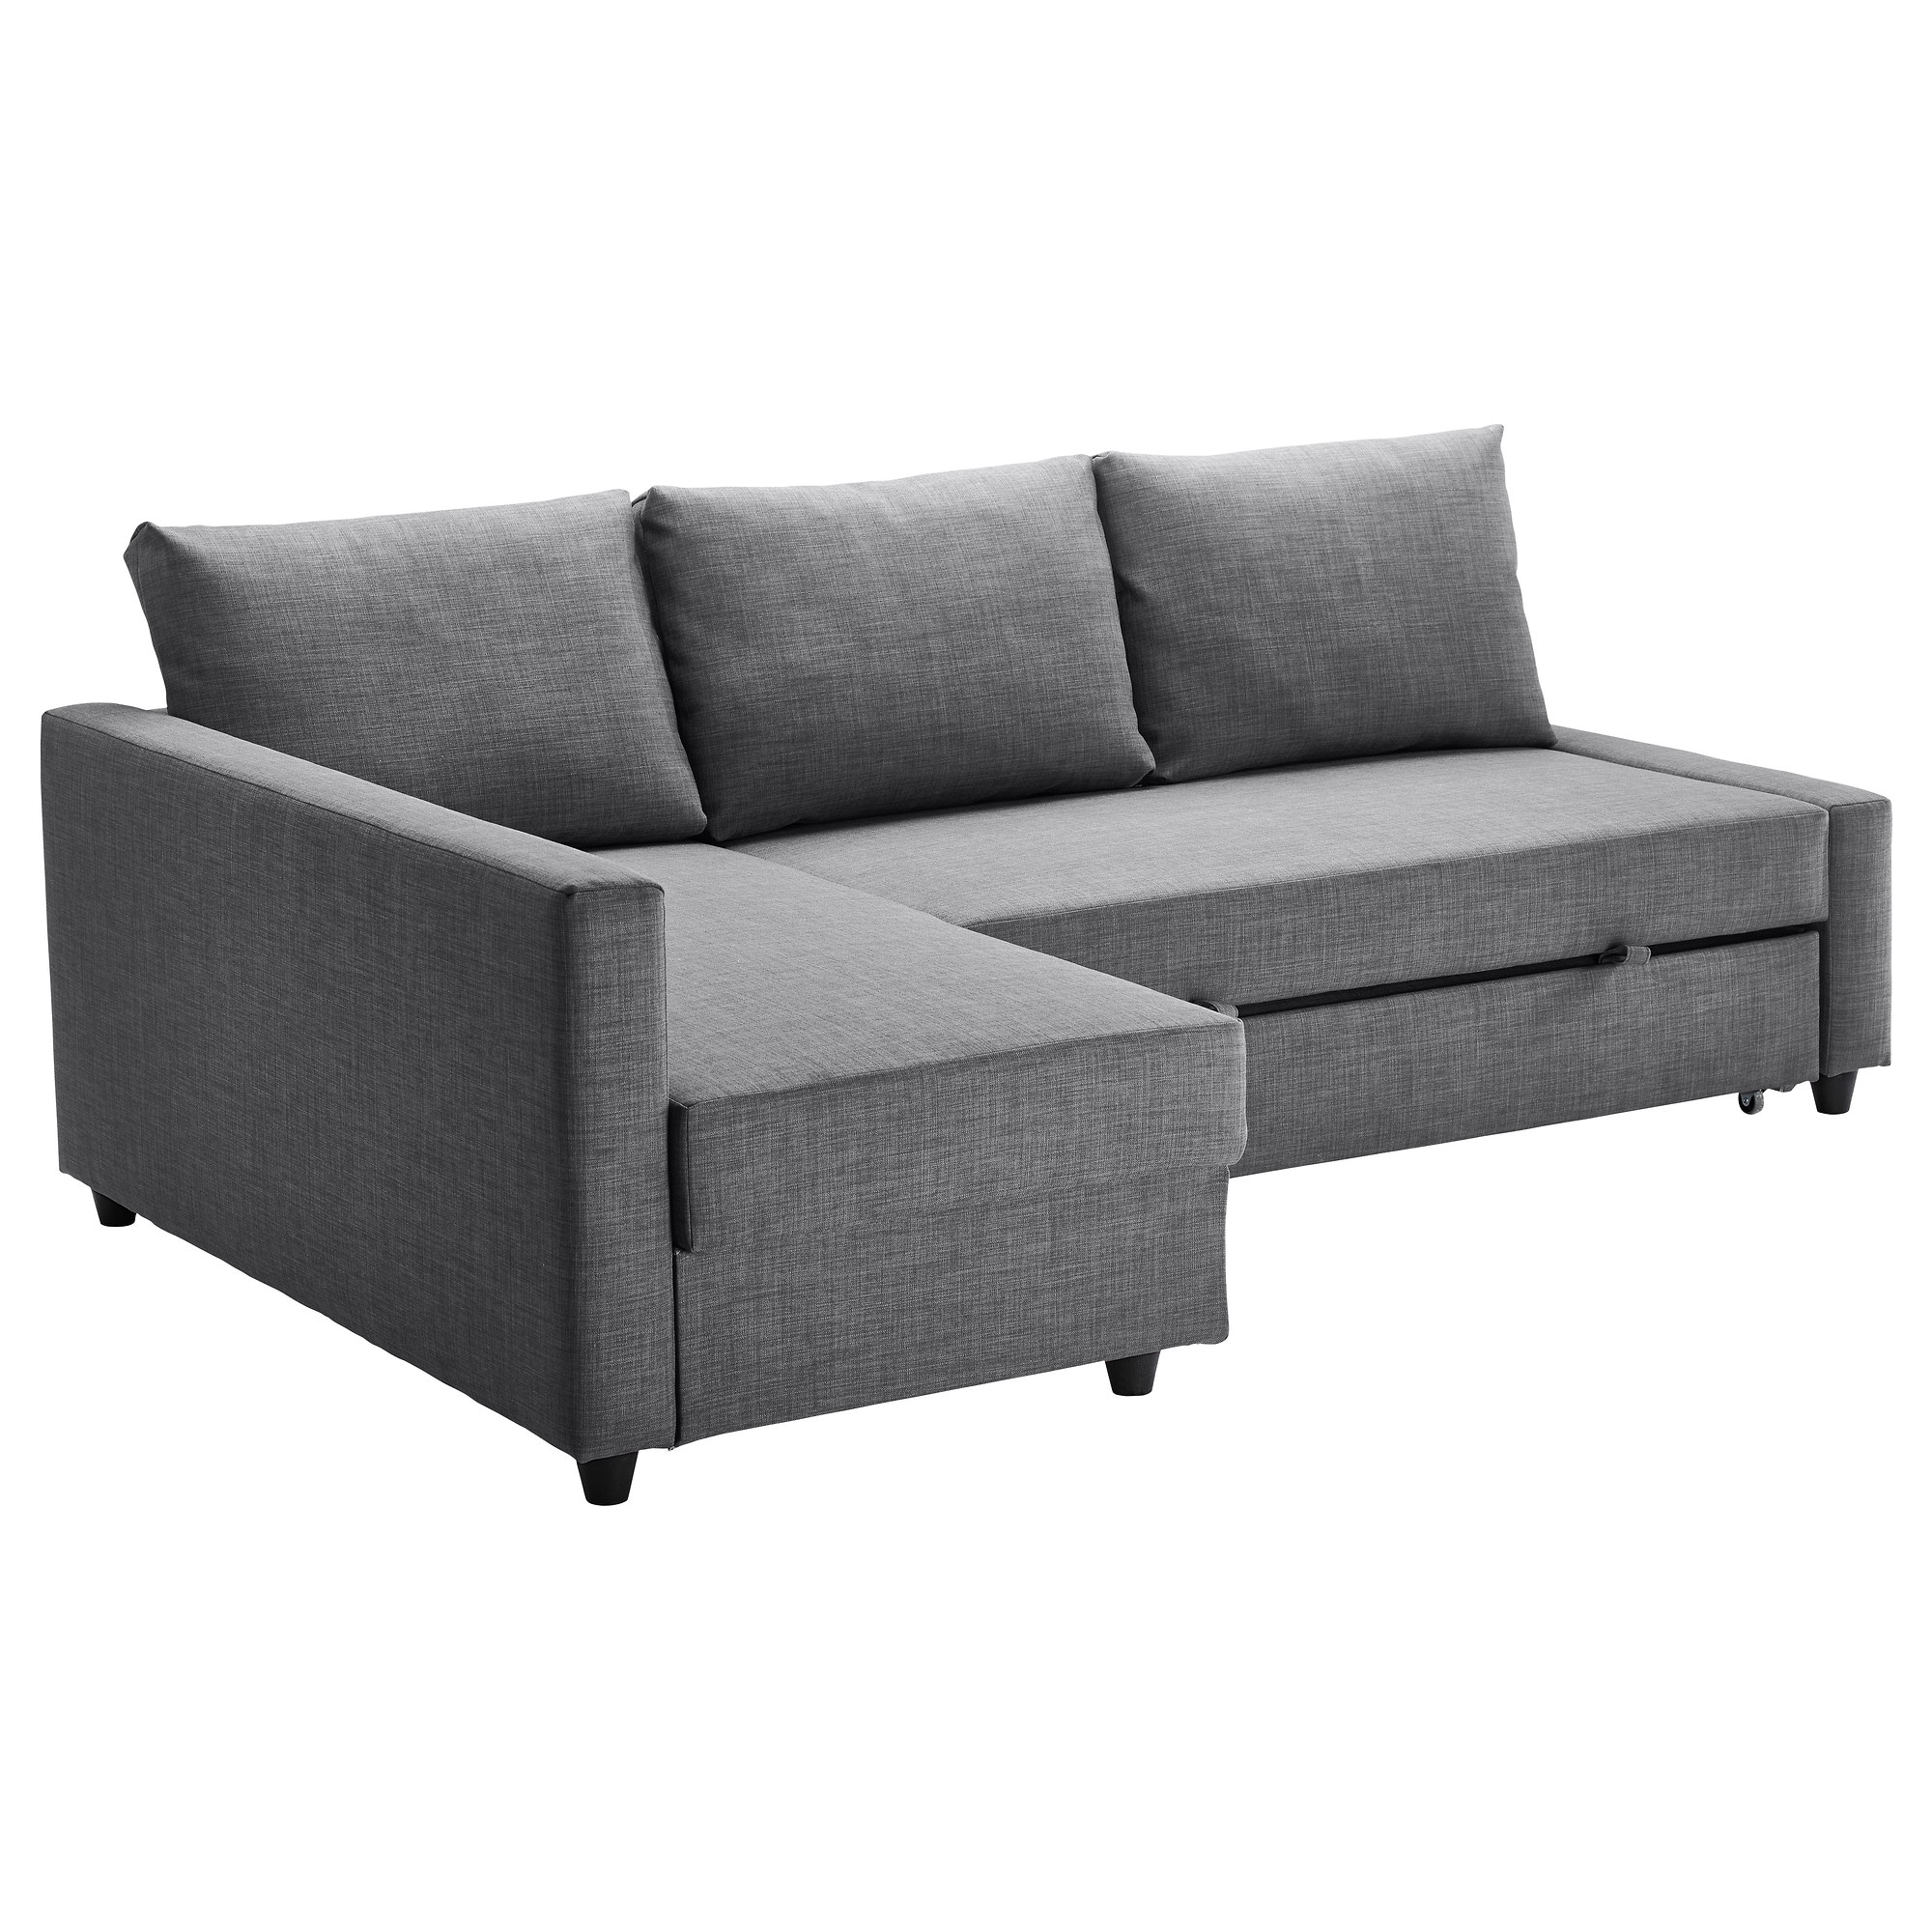 Friheten Corner Sofa Bed With Storage Skiftebo Dark Grey – Ikea Pertaining To Most Recently Released Sofa Bed Chairs (View 3 of 20)